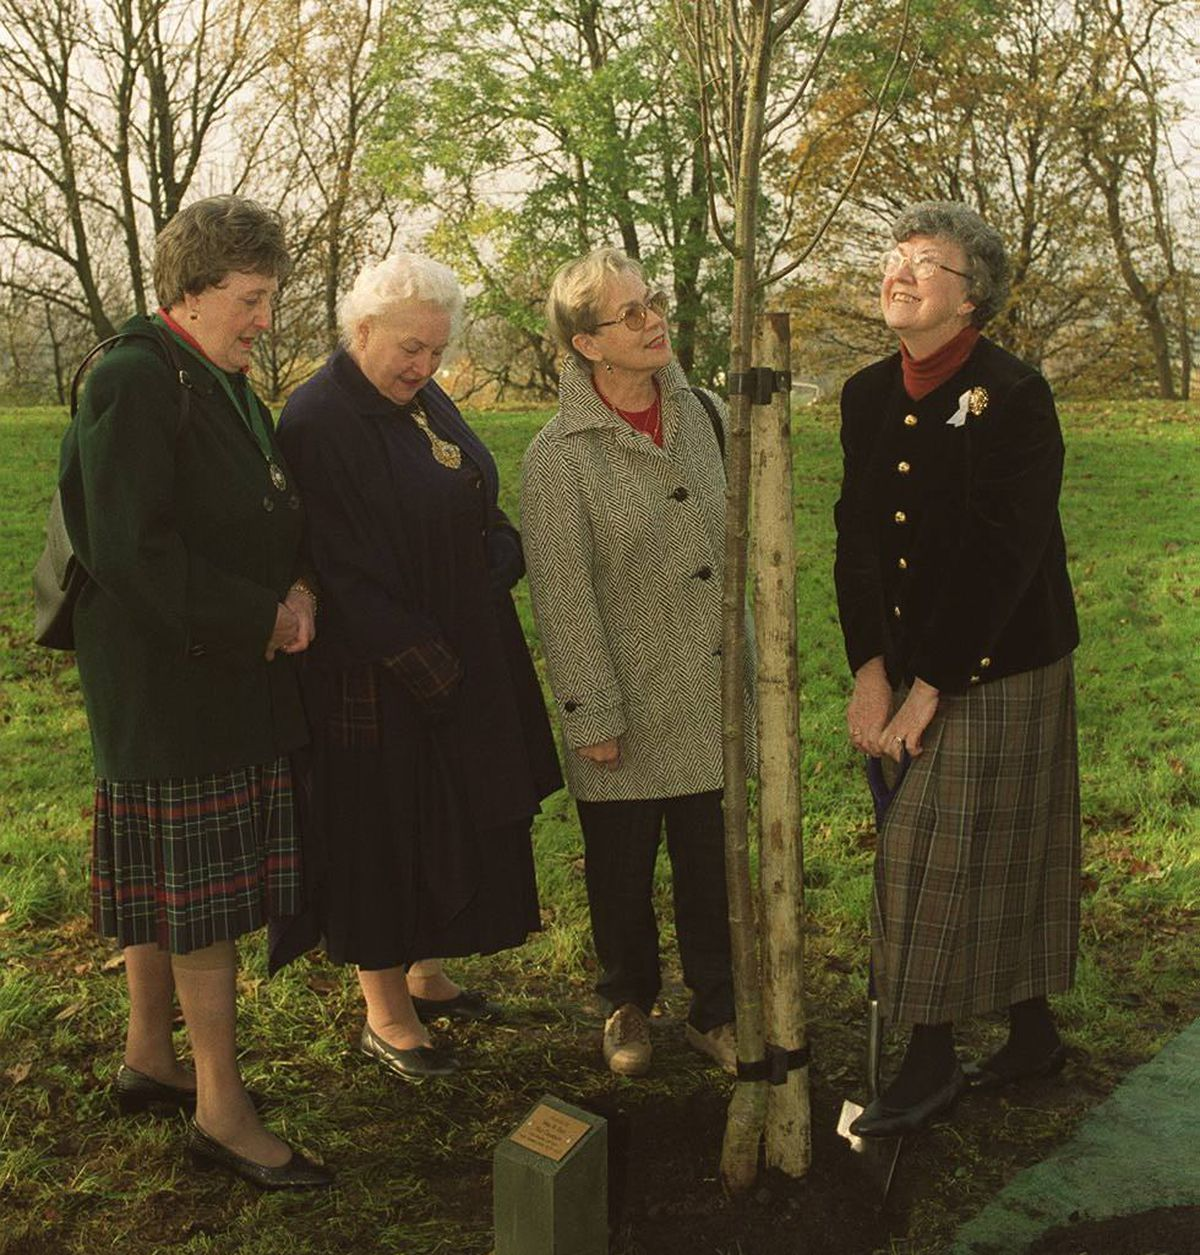 National chairman Marjory Hall plants a tree in Marsh Park, Brierley Hill watched by, Jean Darby, chairman of Brierley Hill TWG, Mavis hunt, Mayoress of Dudley and Margaret Tew, chairman of the West Midlands federation of TWG in 1999